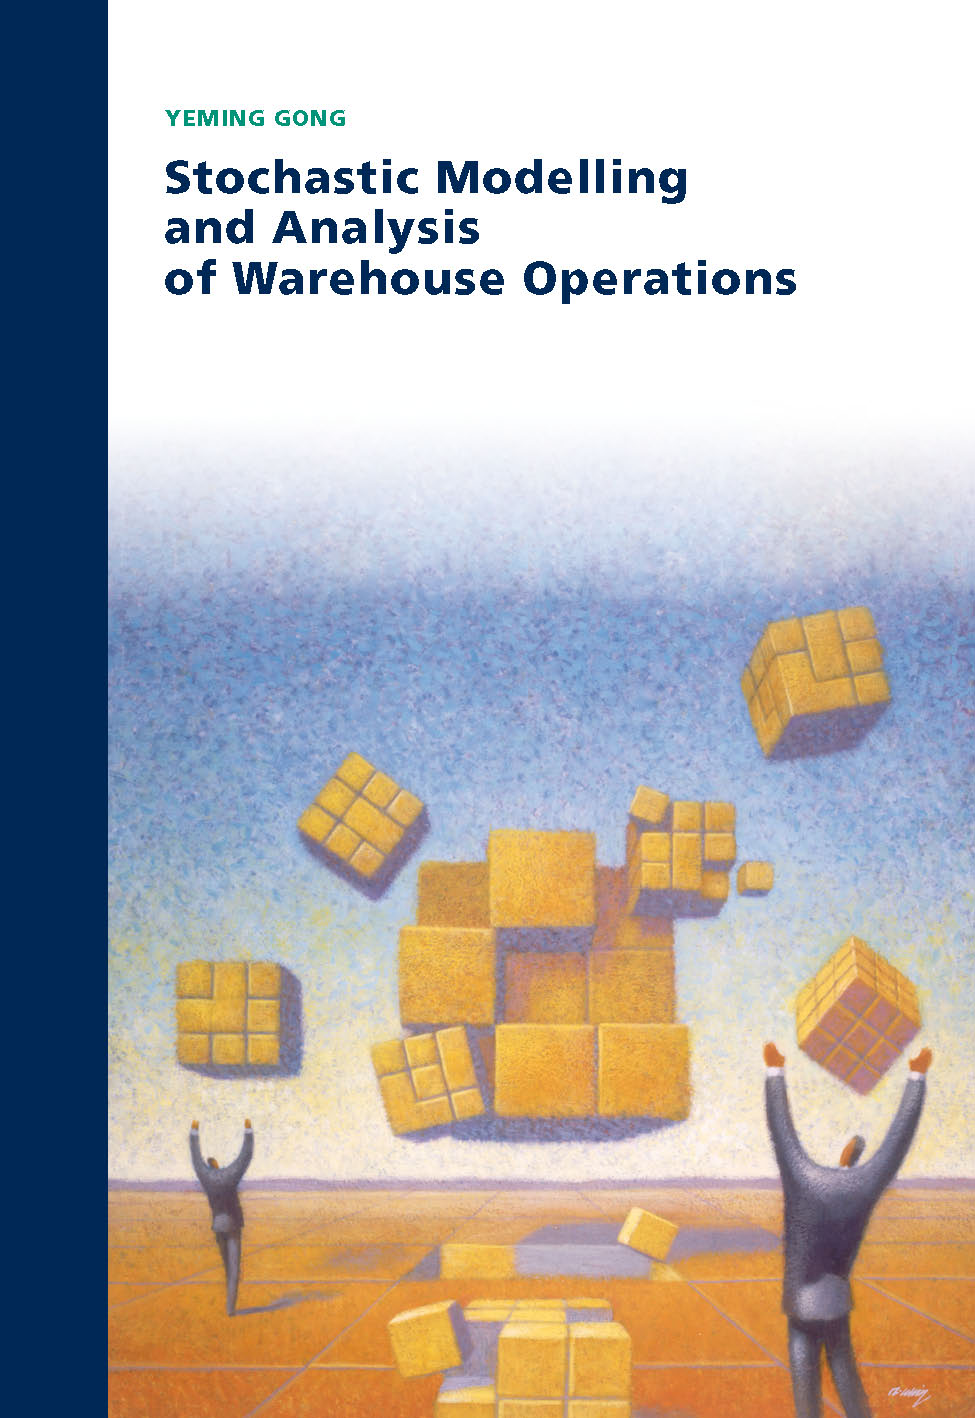 Stochastic Modelling and Analysis of Warehouse Operations